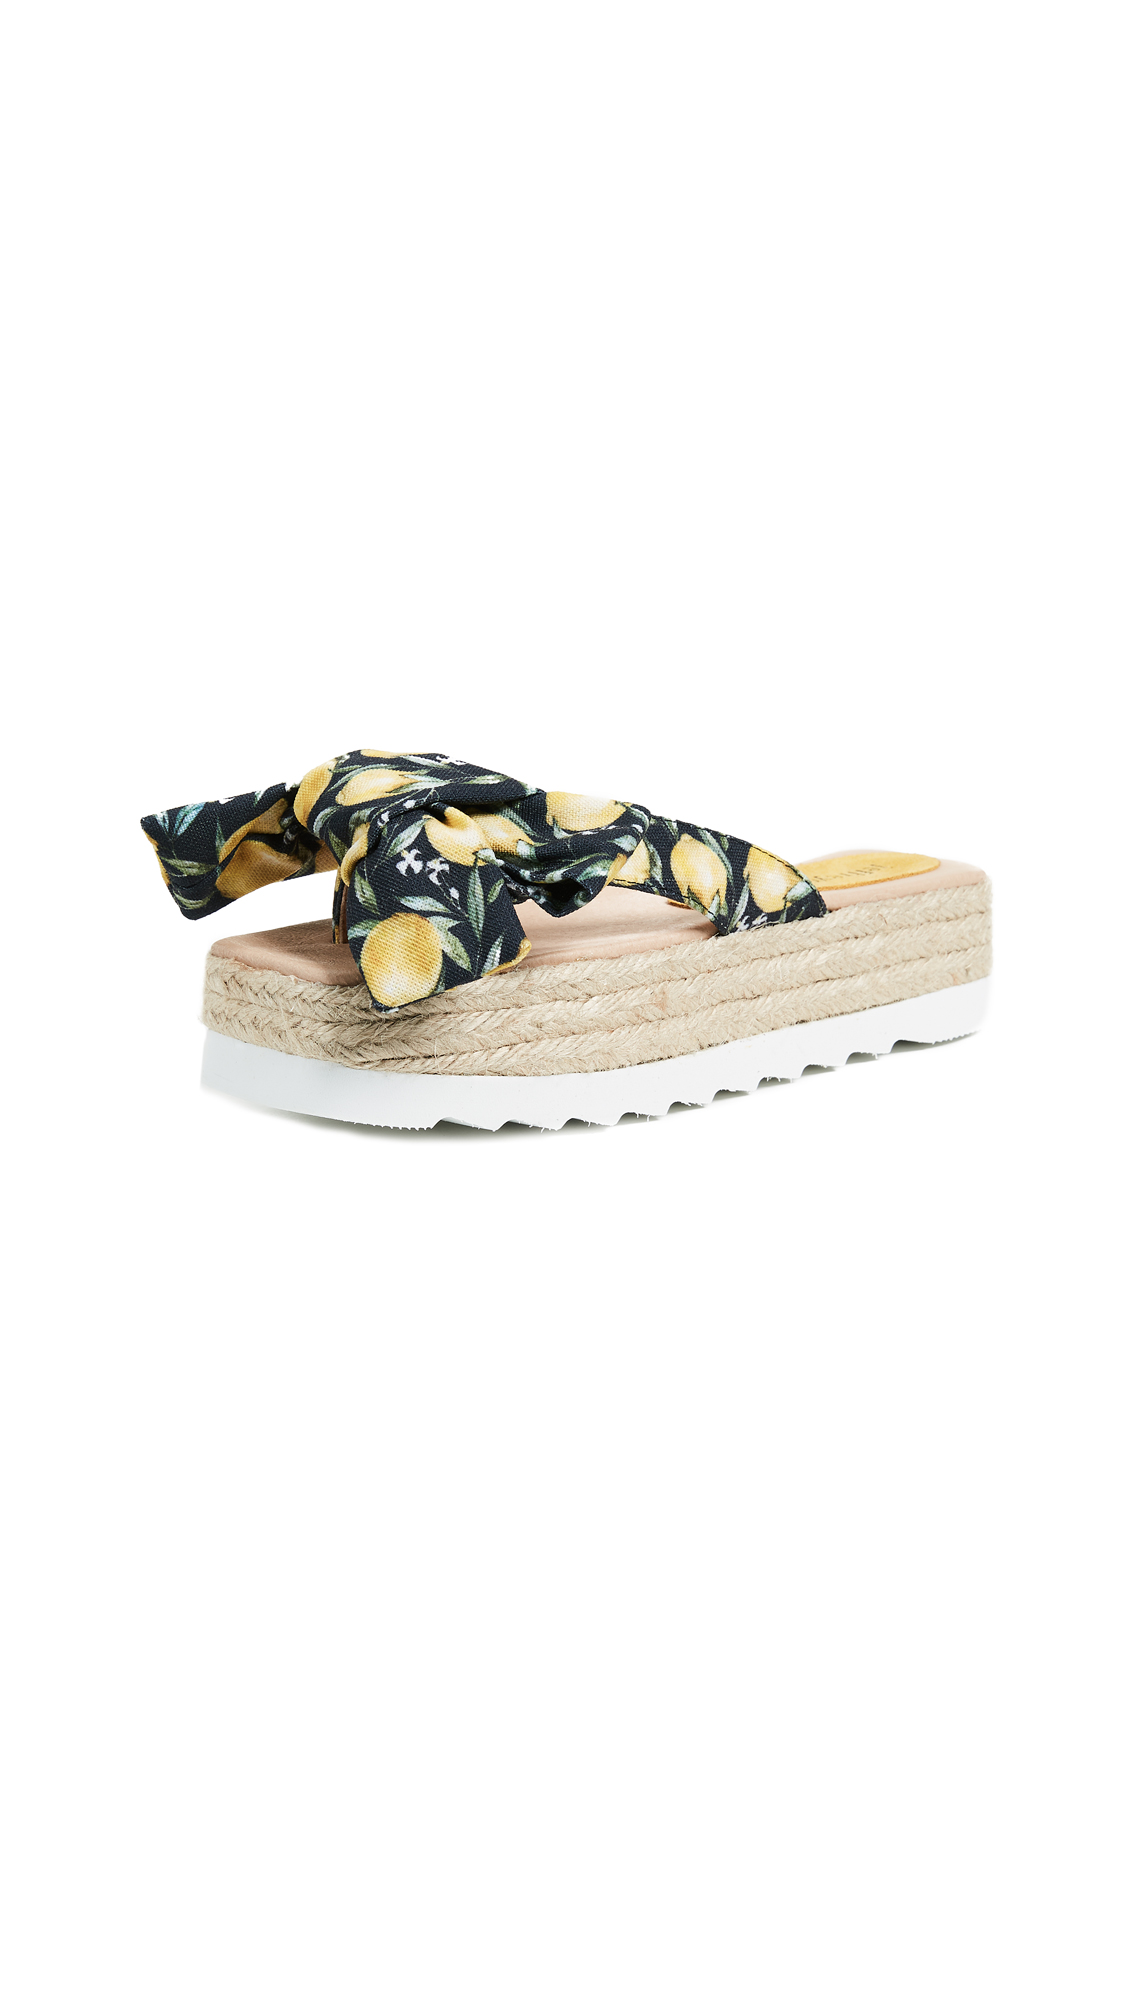 Jeffrey Campbell Printed Bow Platform Slides - Lemon Print